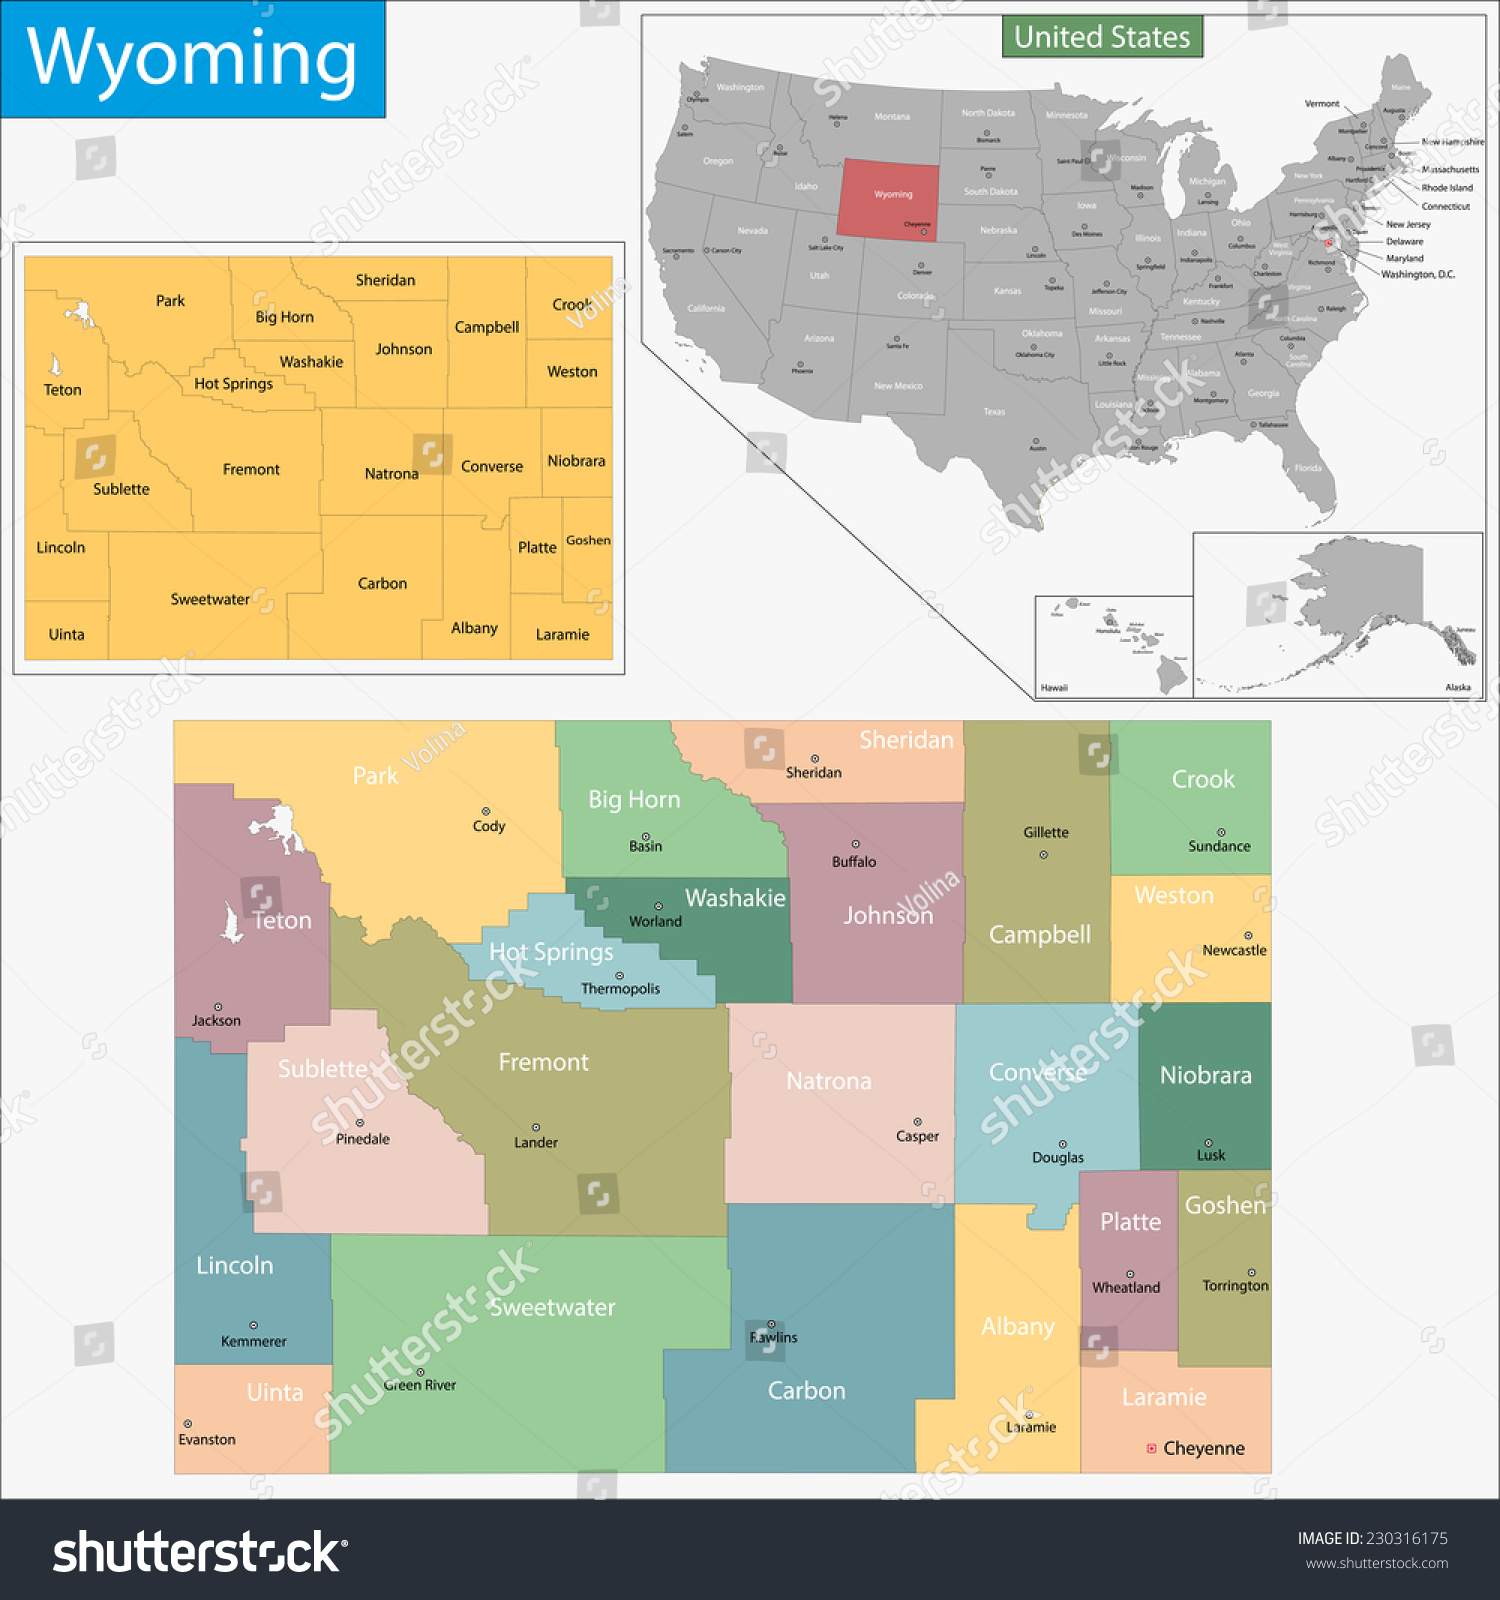 Wyoming Counties Map Monterrey Mexico Map - Wy state map